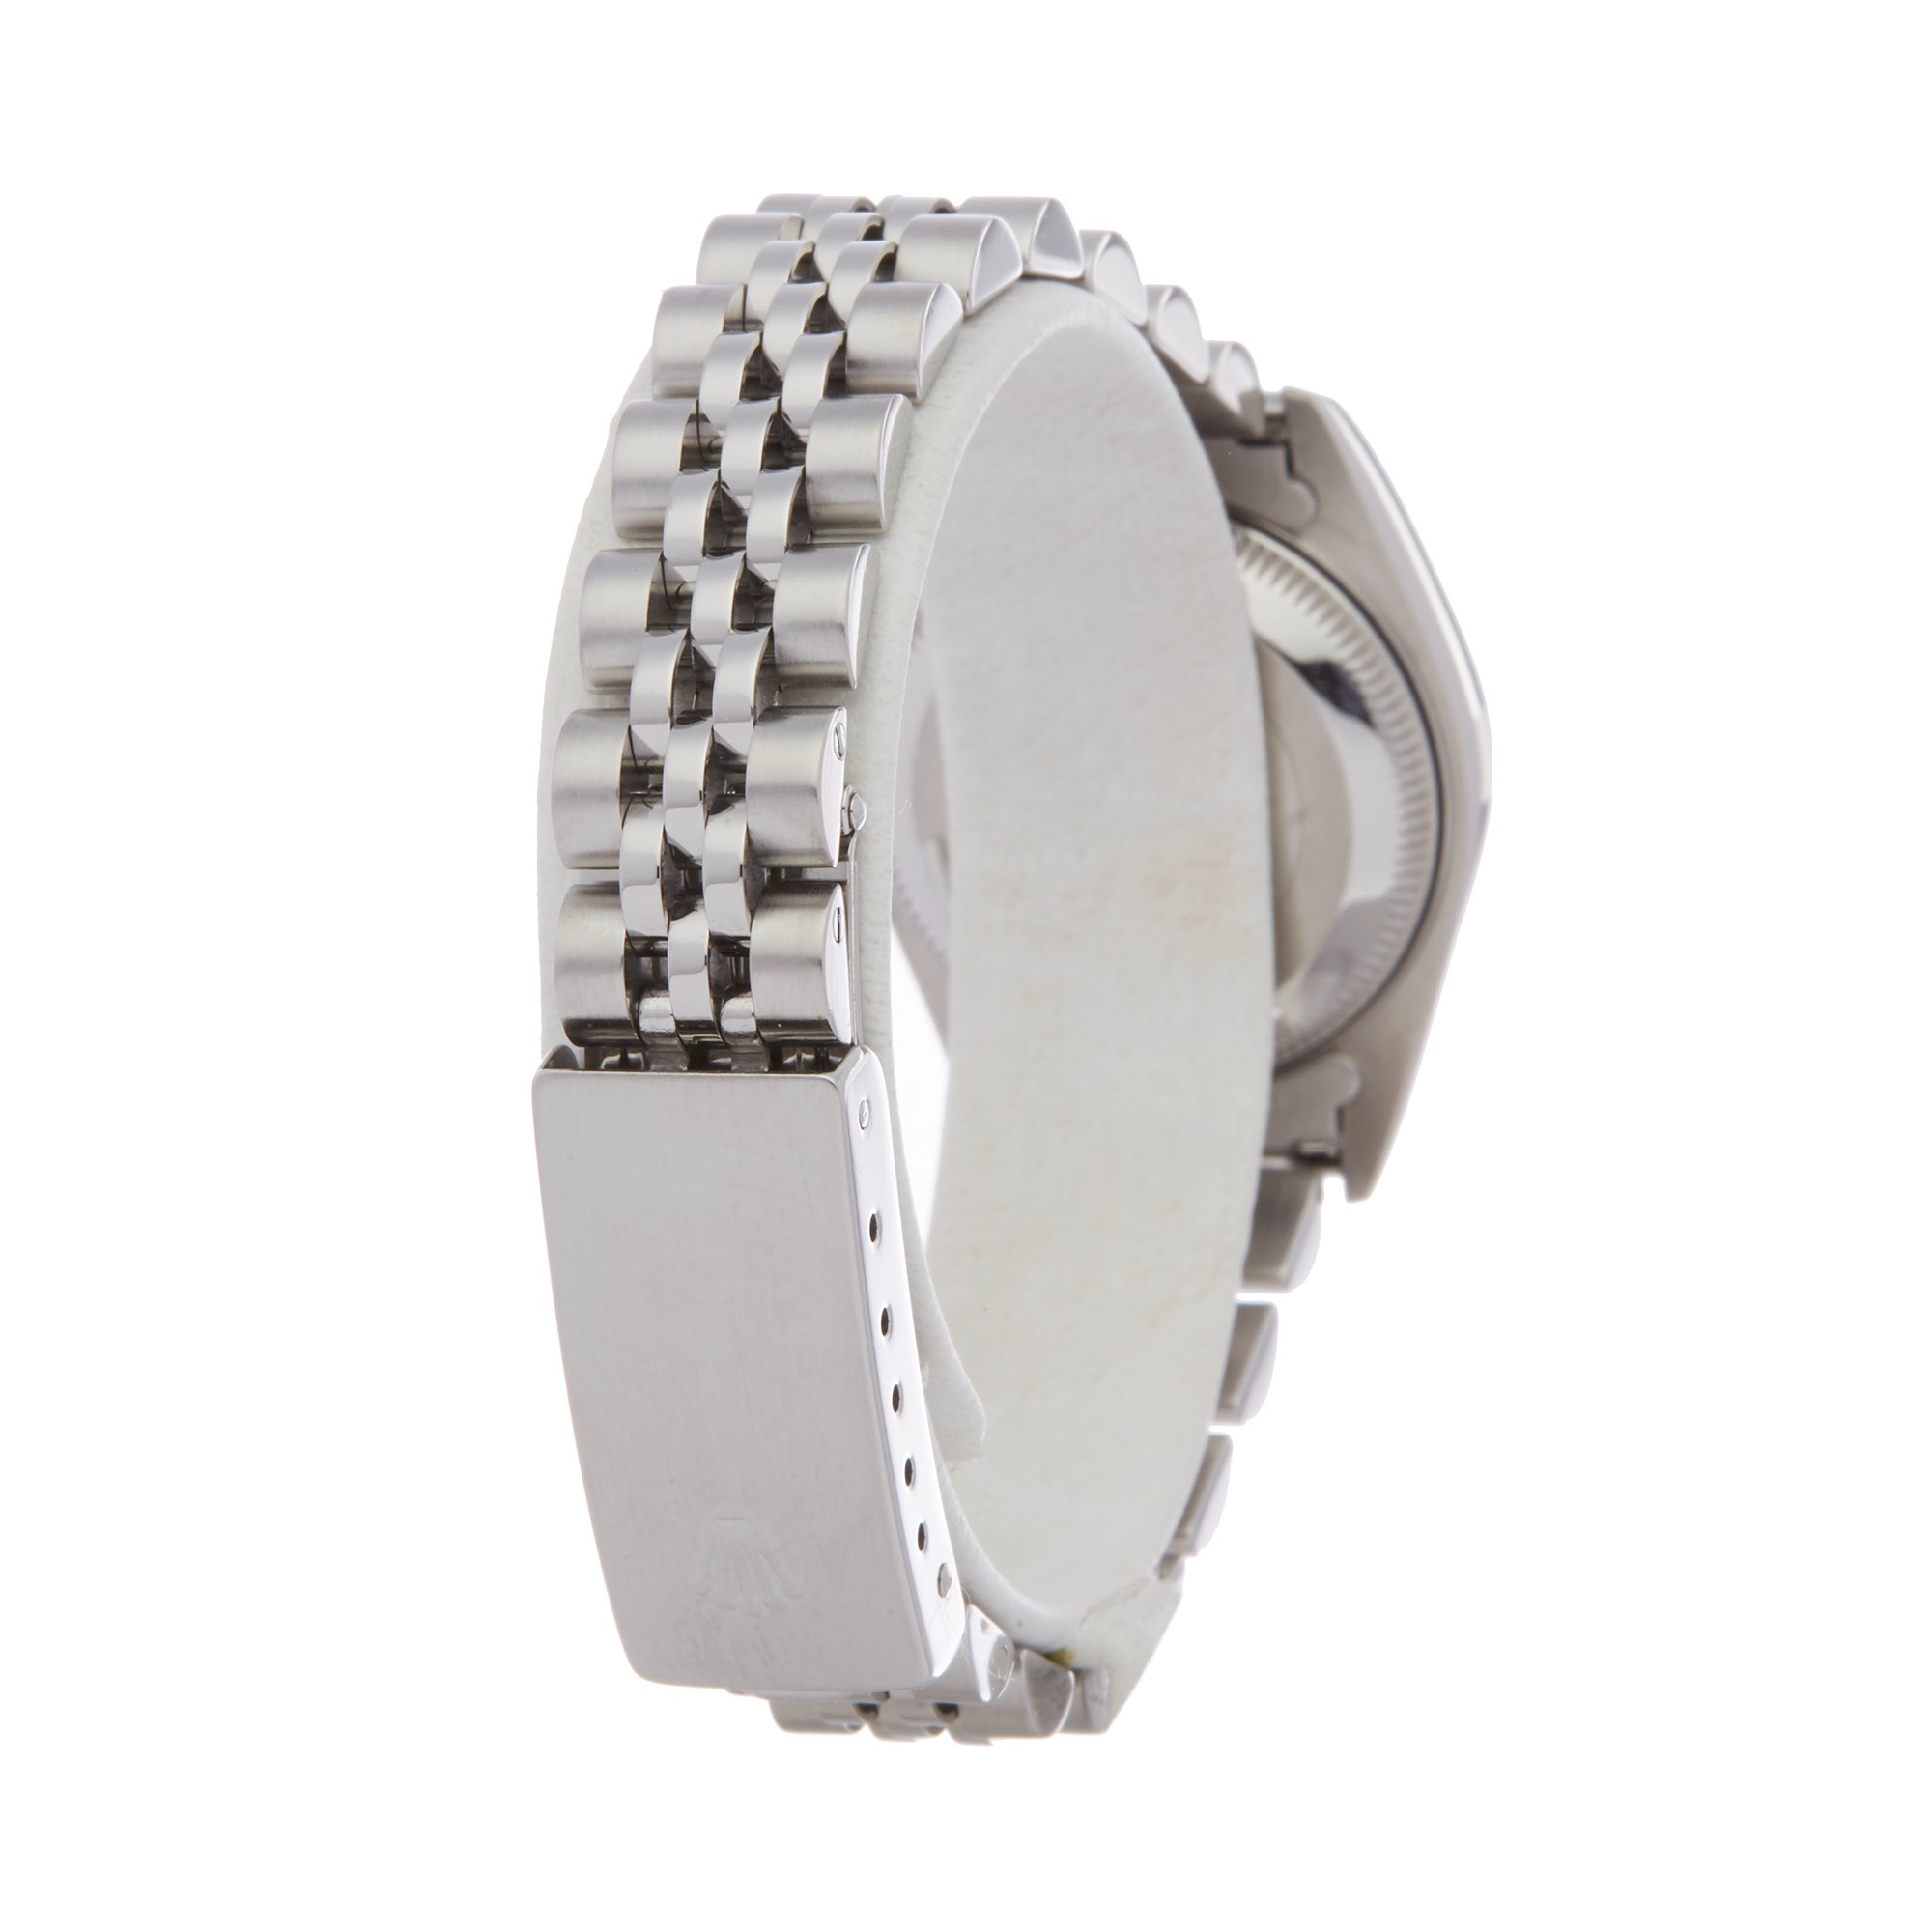 Rolex Datejust 26 69174 Ladies Stainless Steel Watch - Image 2 of 8